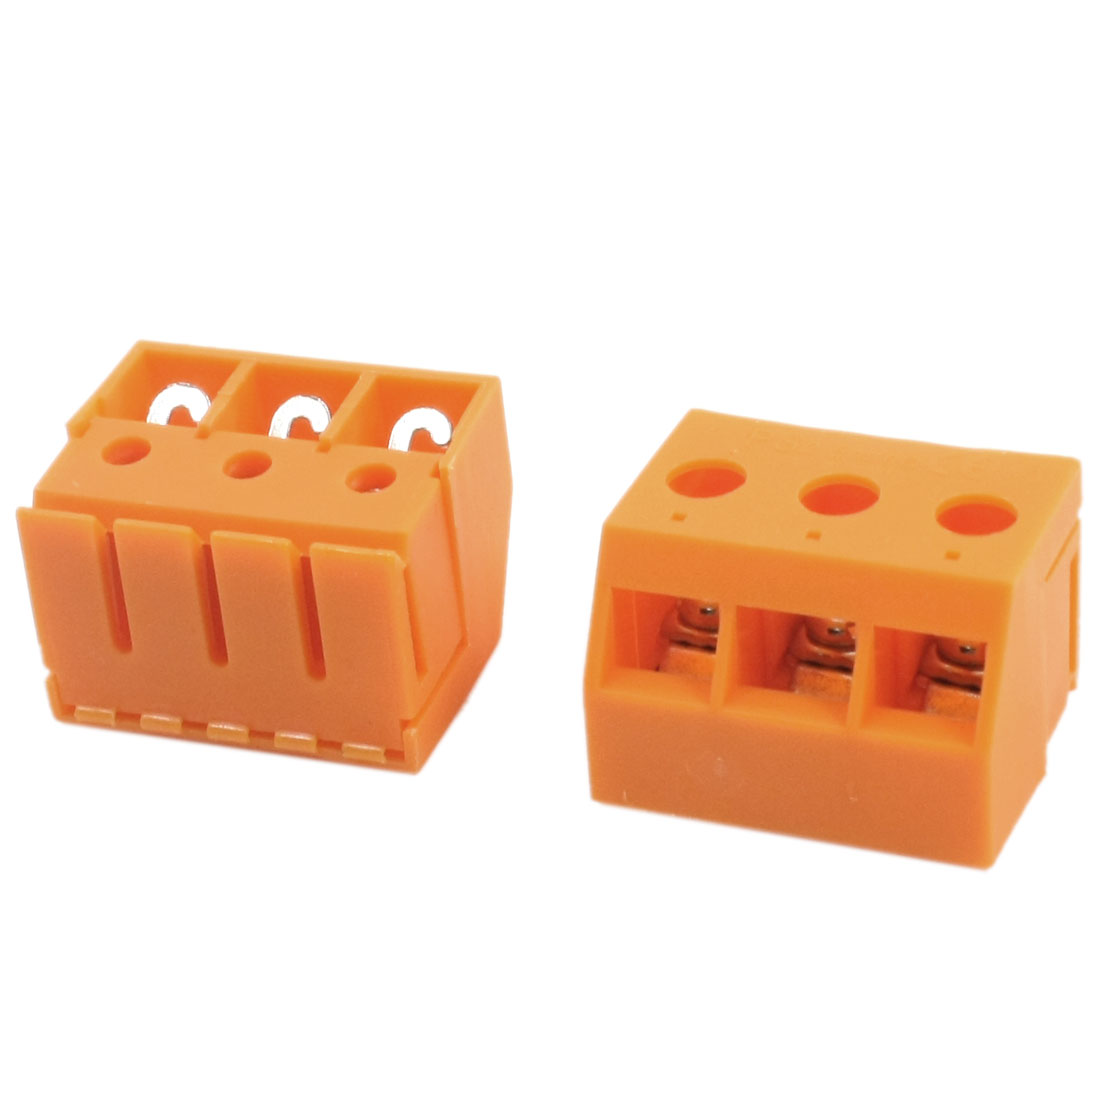 2Pcs AC 750V 30A 10mm Pitch 24-8AWG Wire 3 Screw Terminals Orange Plastic Transformer Barrier Block Connector w Cover